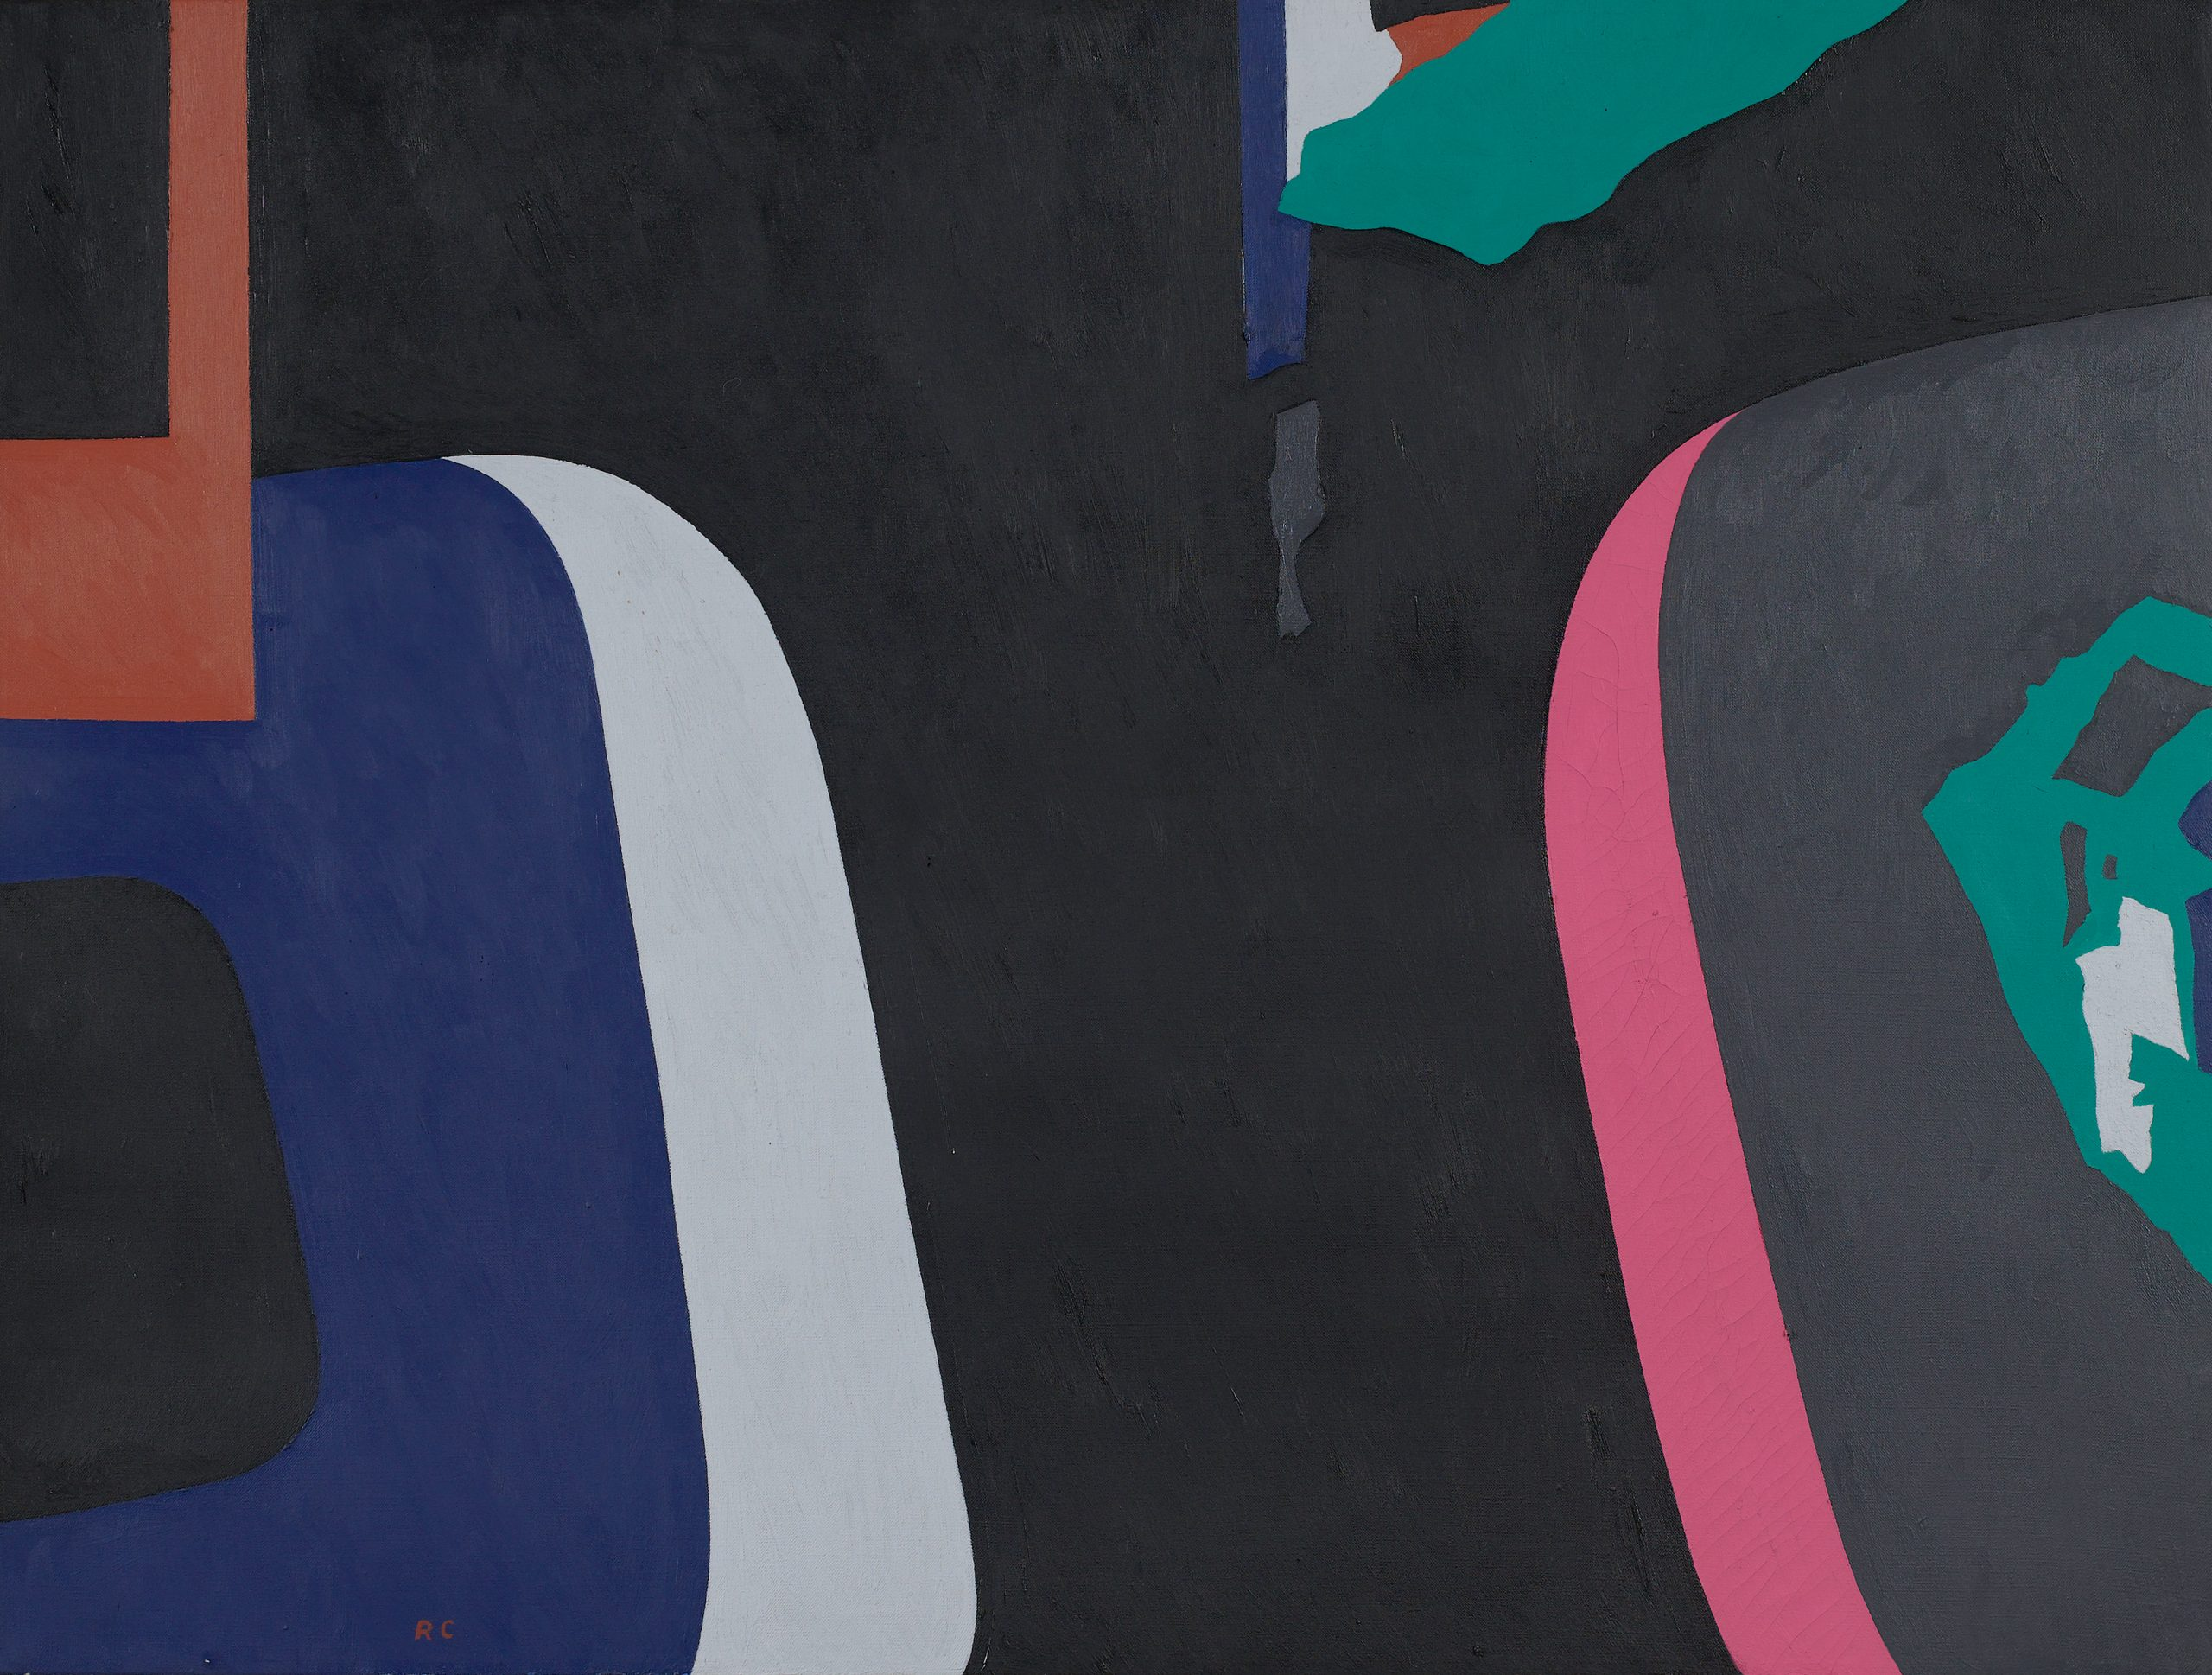 Abstract painting of layered and torn signs depicted as color strips and shapes of blue, white, teal, pink, and orange on a black background.